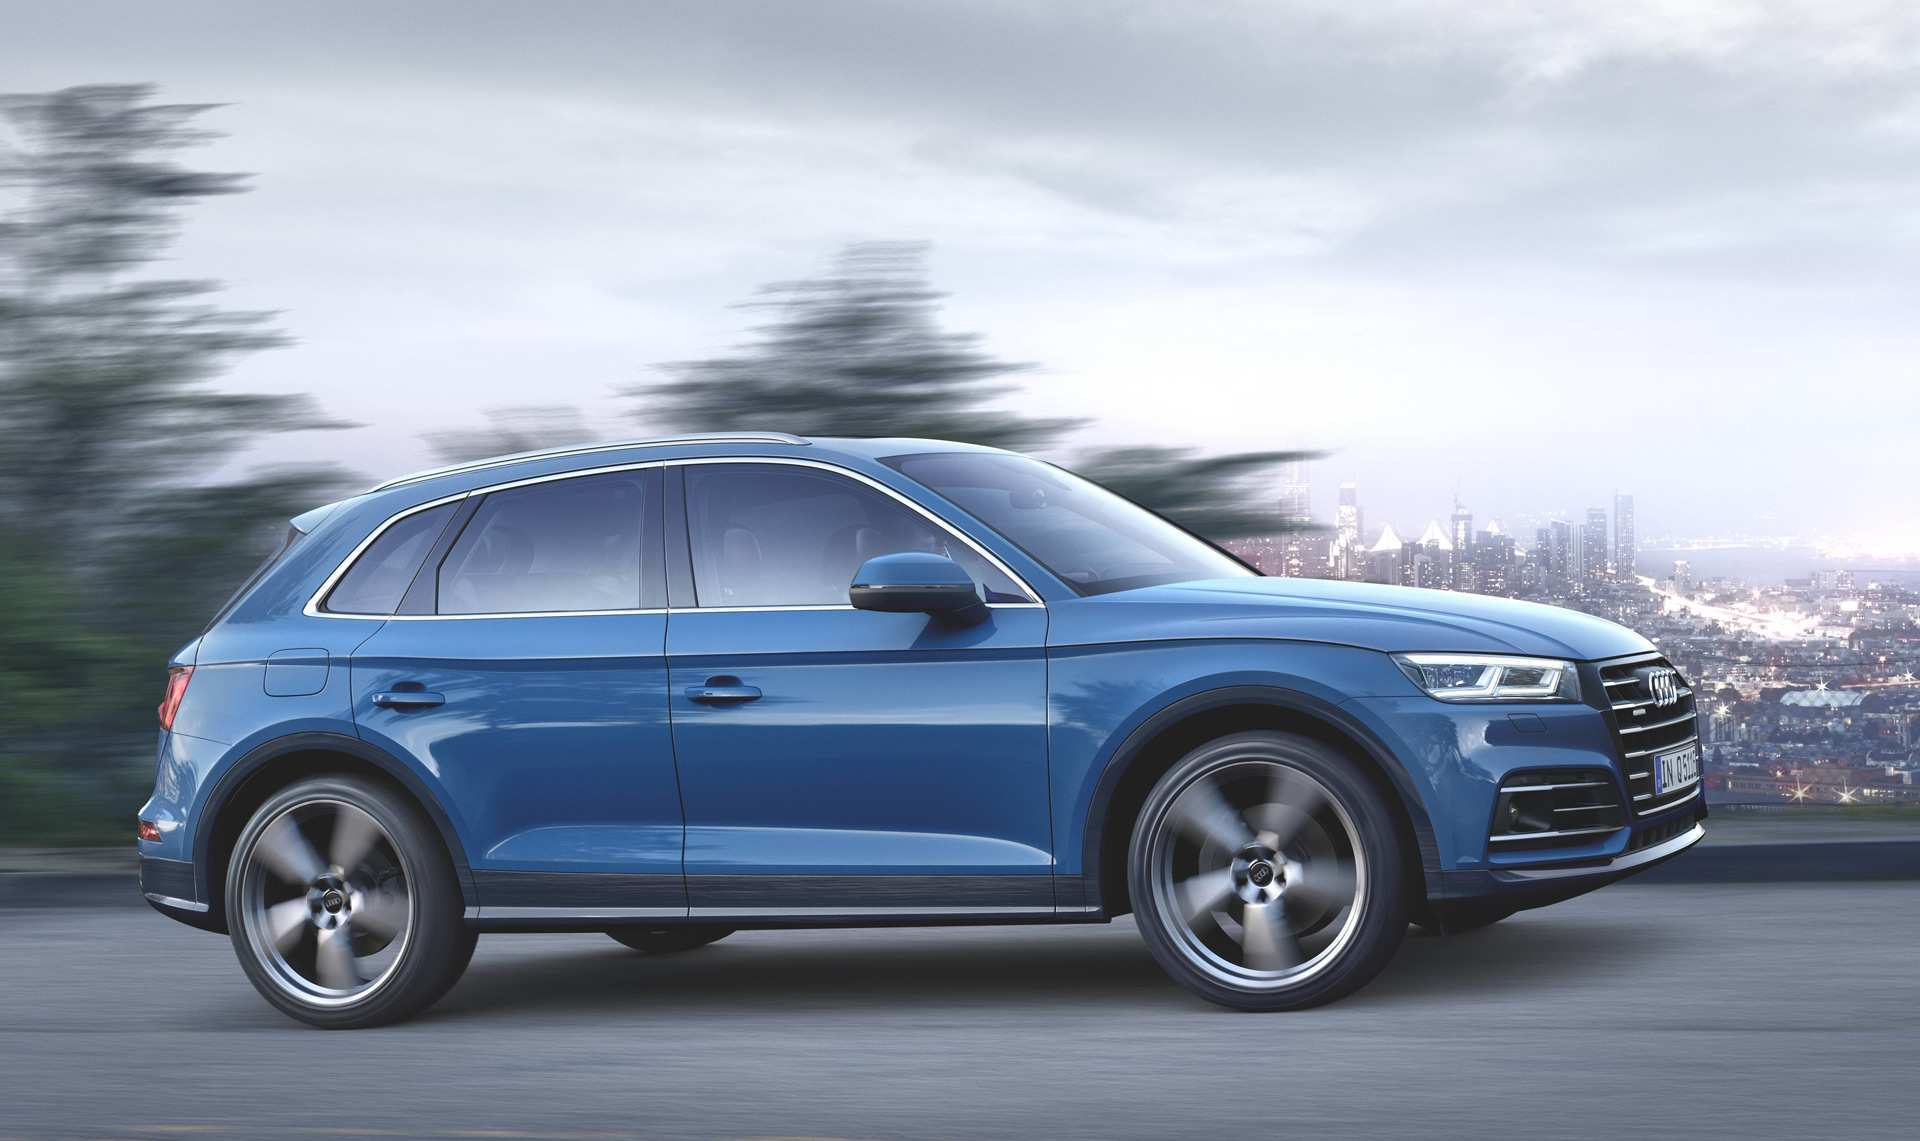 64 All New Audi New Q5 2020 Images